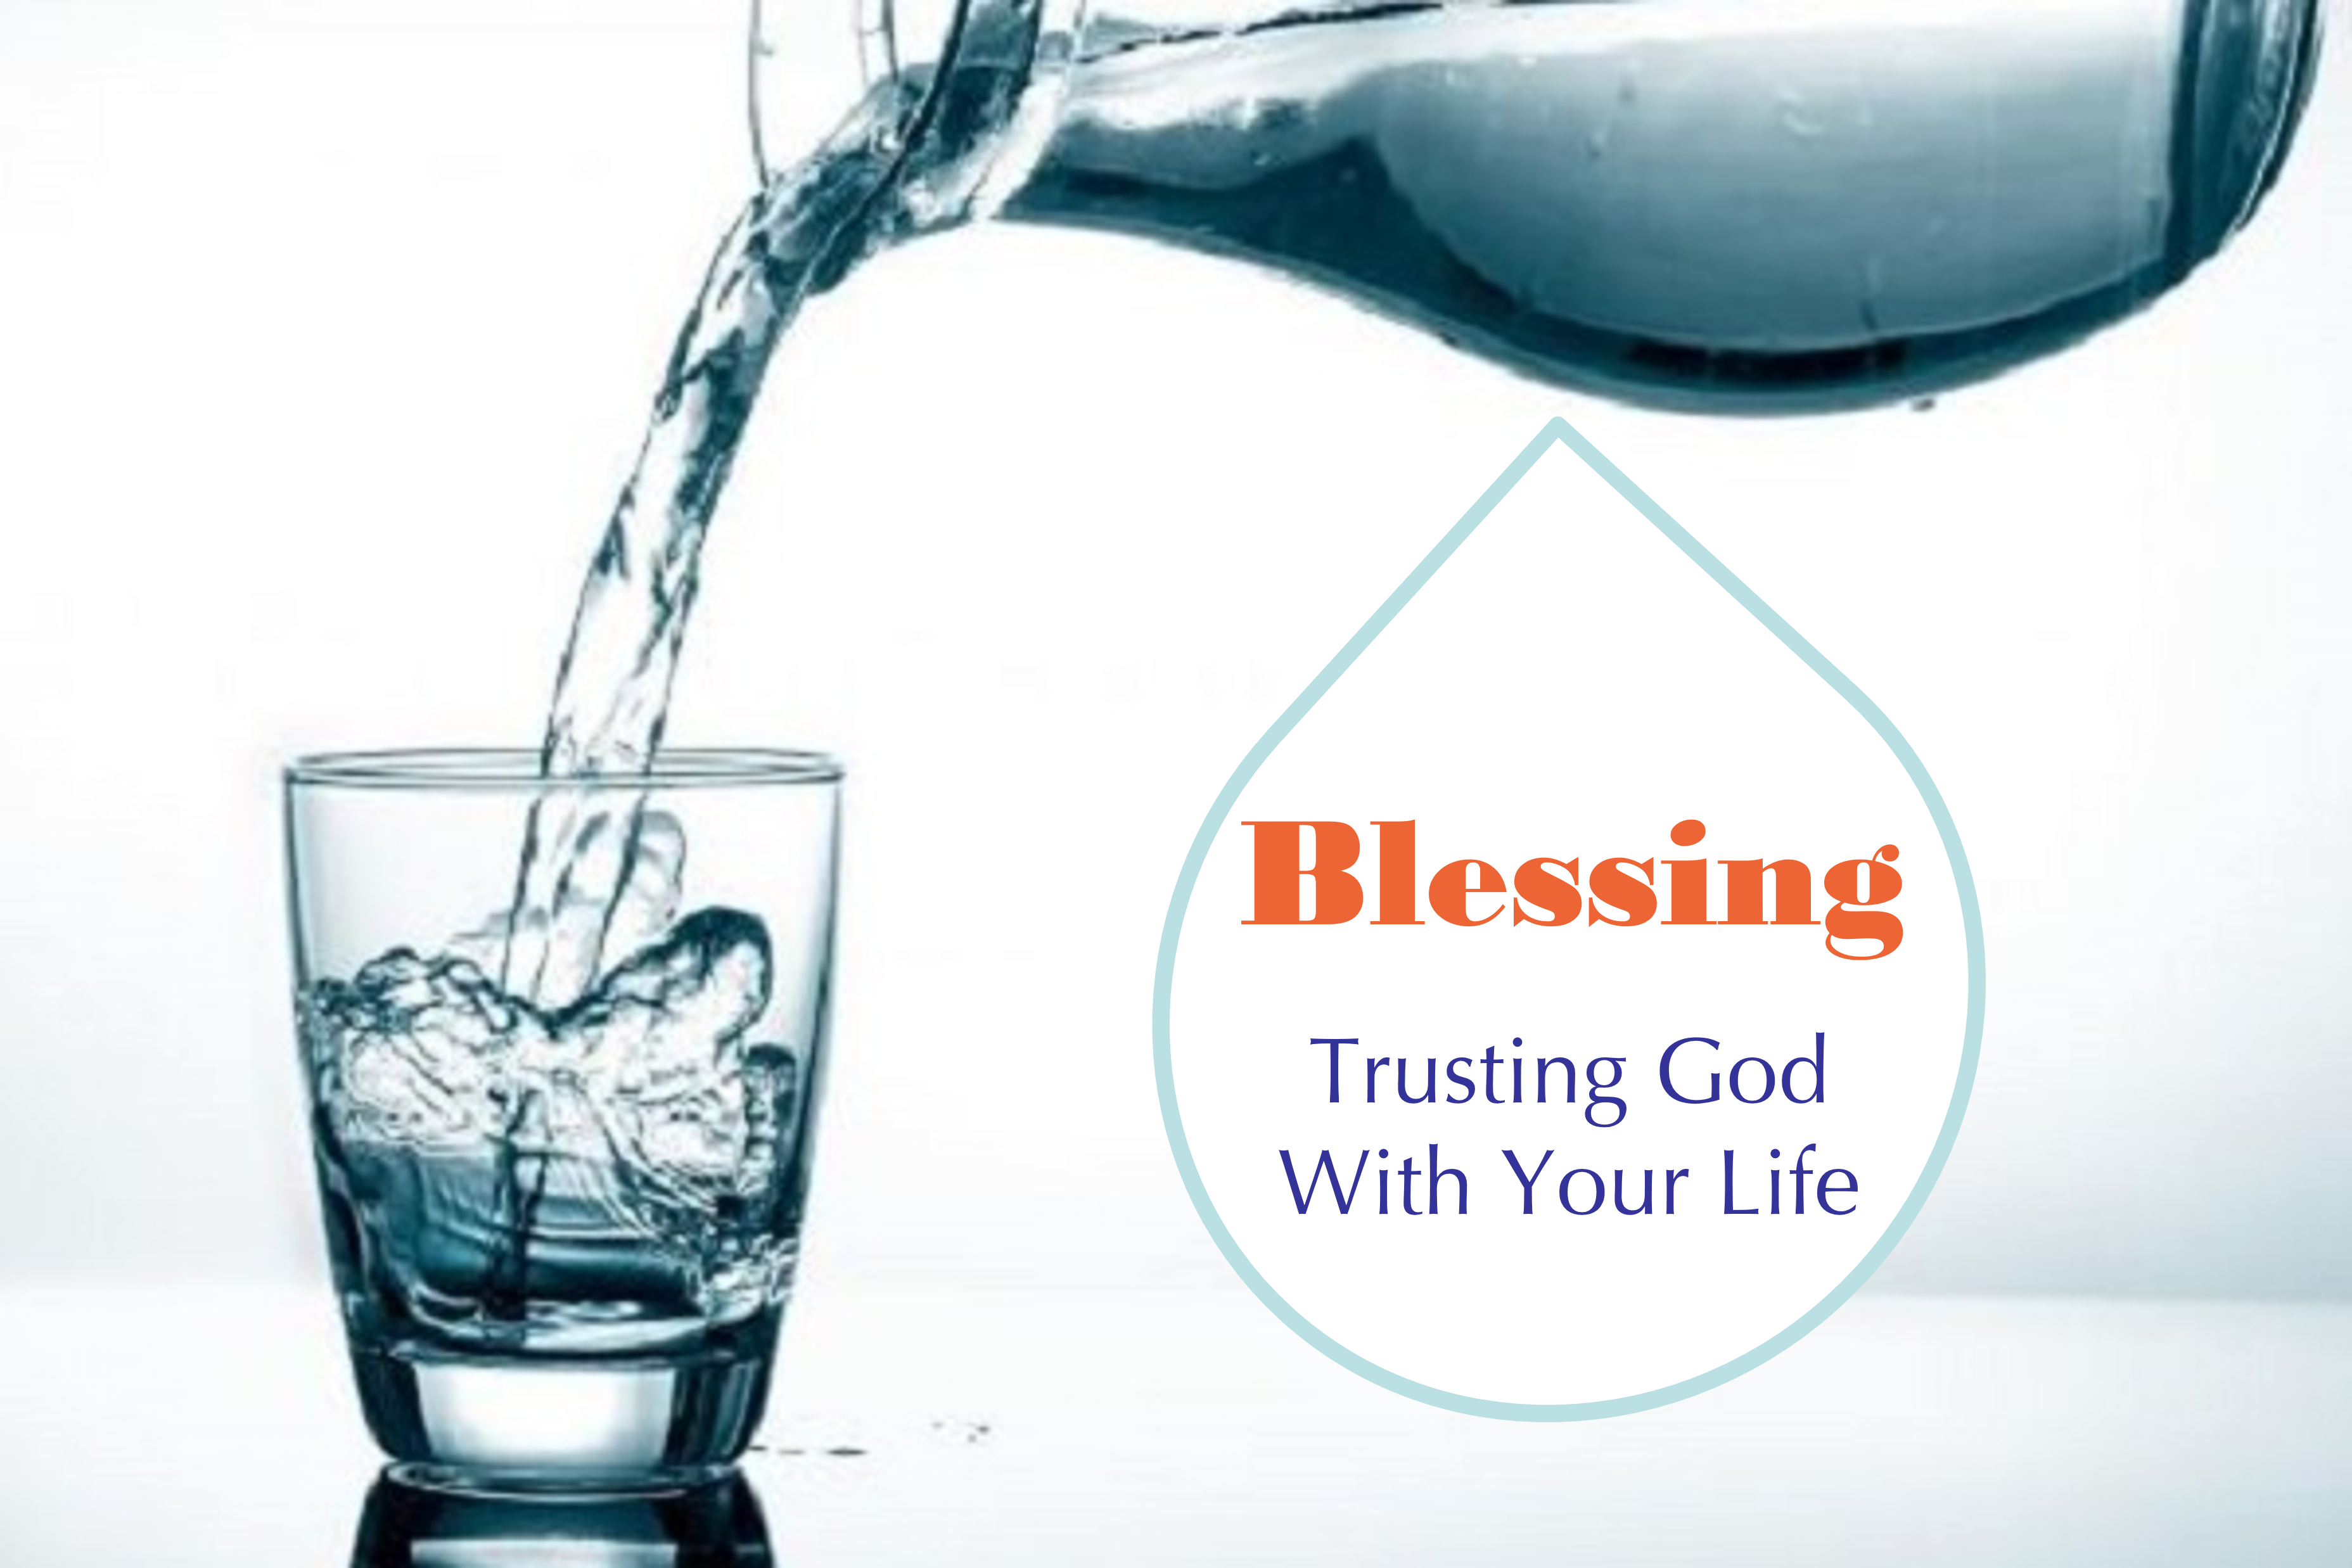 Blessing series